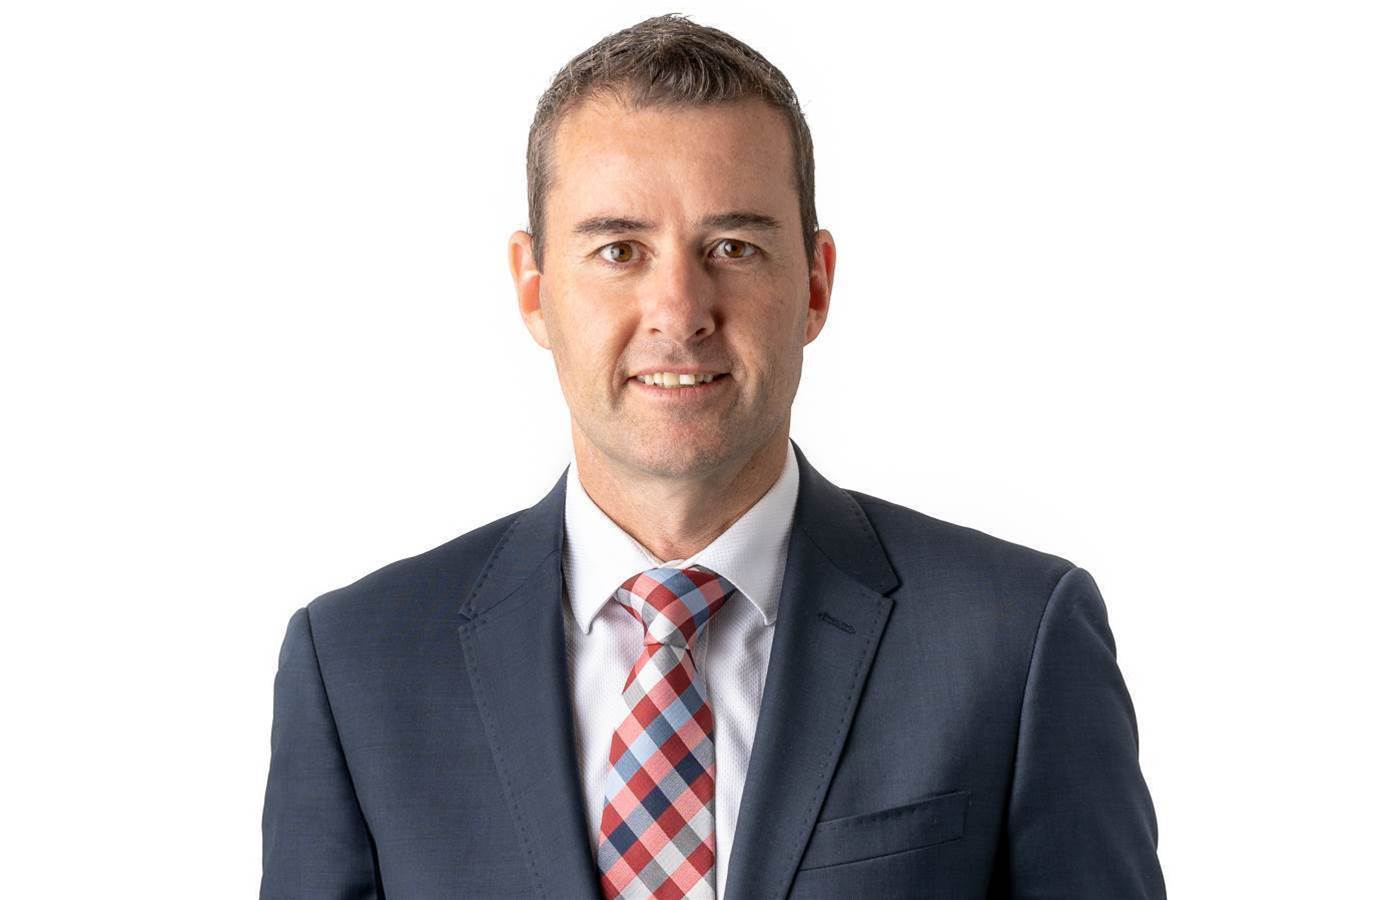 Canberra MSP Epicon hires Wayne Gowland out of ASG Group as chief executive